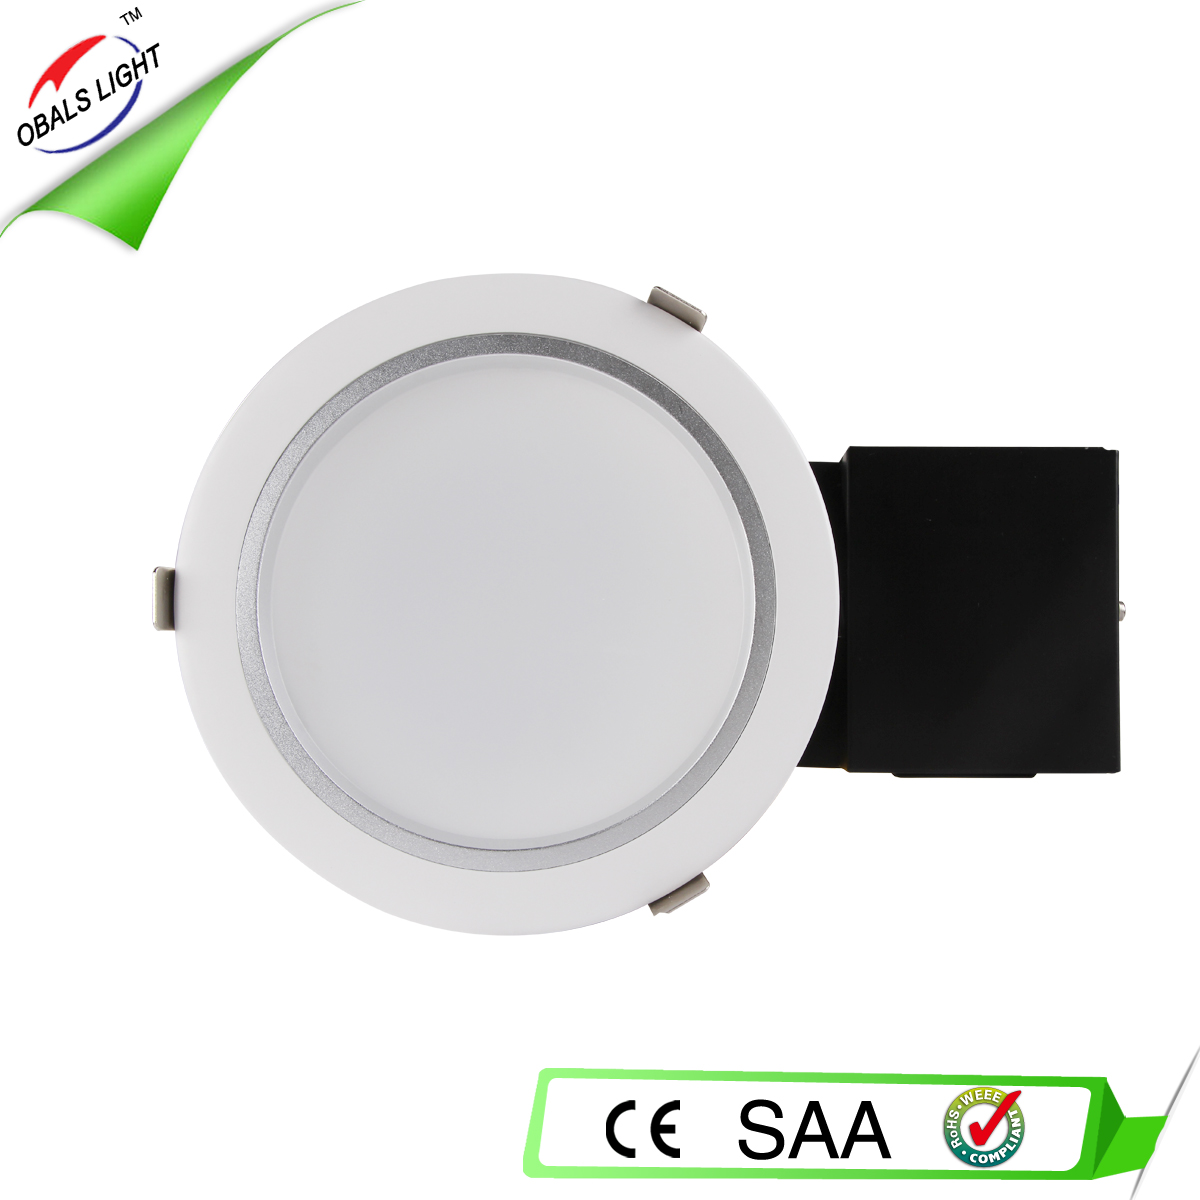 30w round led downlight smd recessed install CE ROHS SAA approved